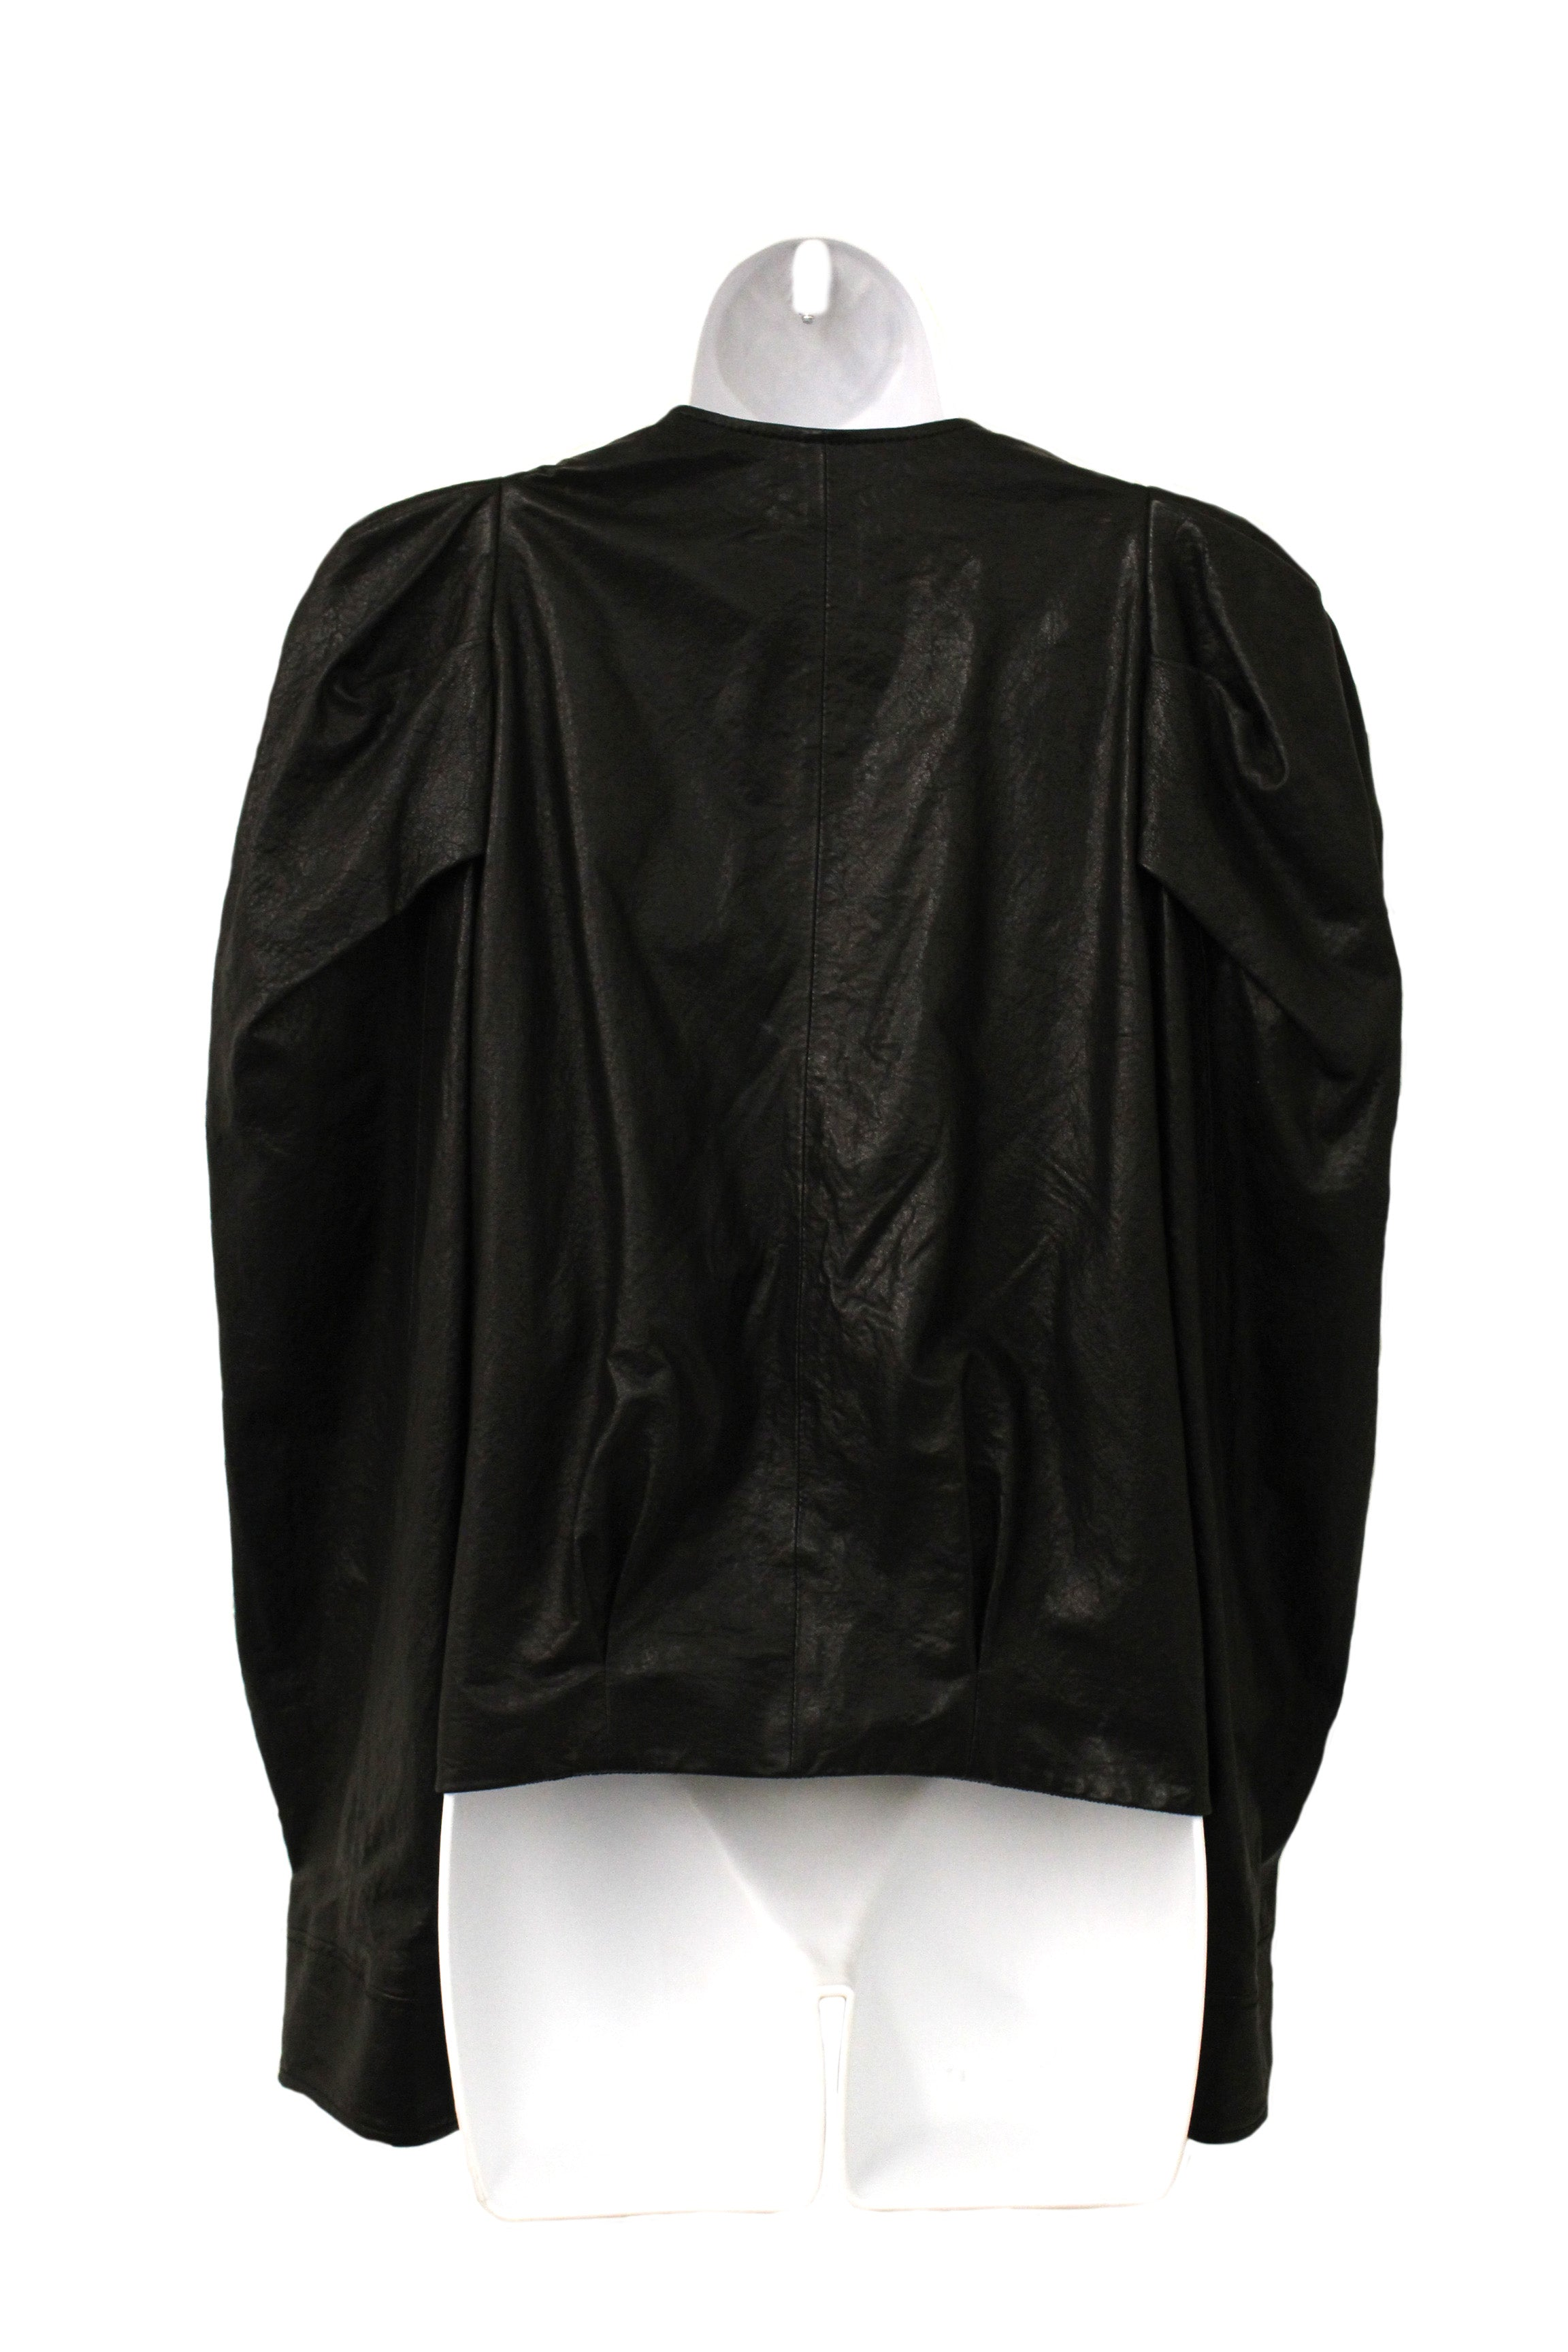 'Sold' Lanvin Black Leather Puffed Sleeve Jacket (Size 36)